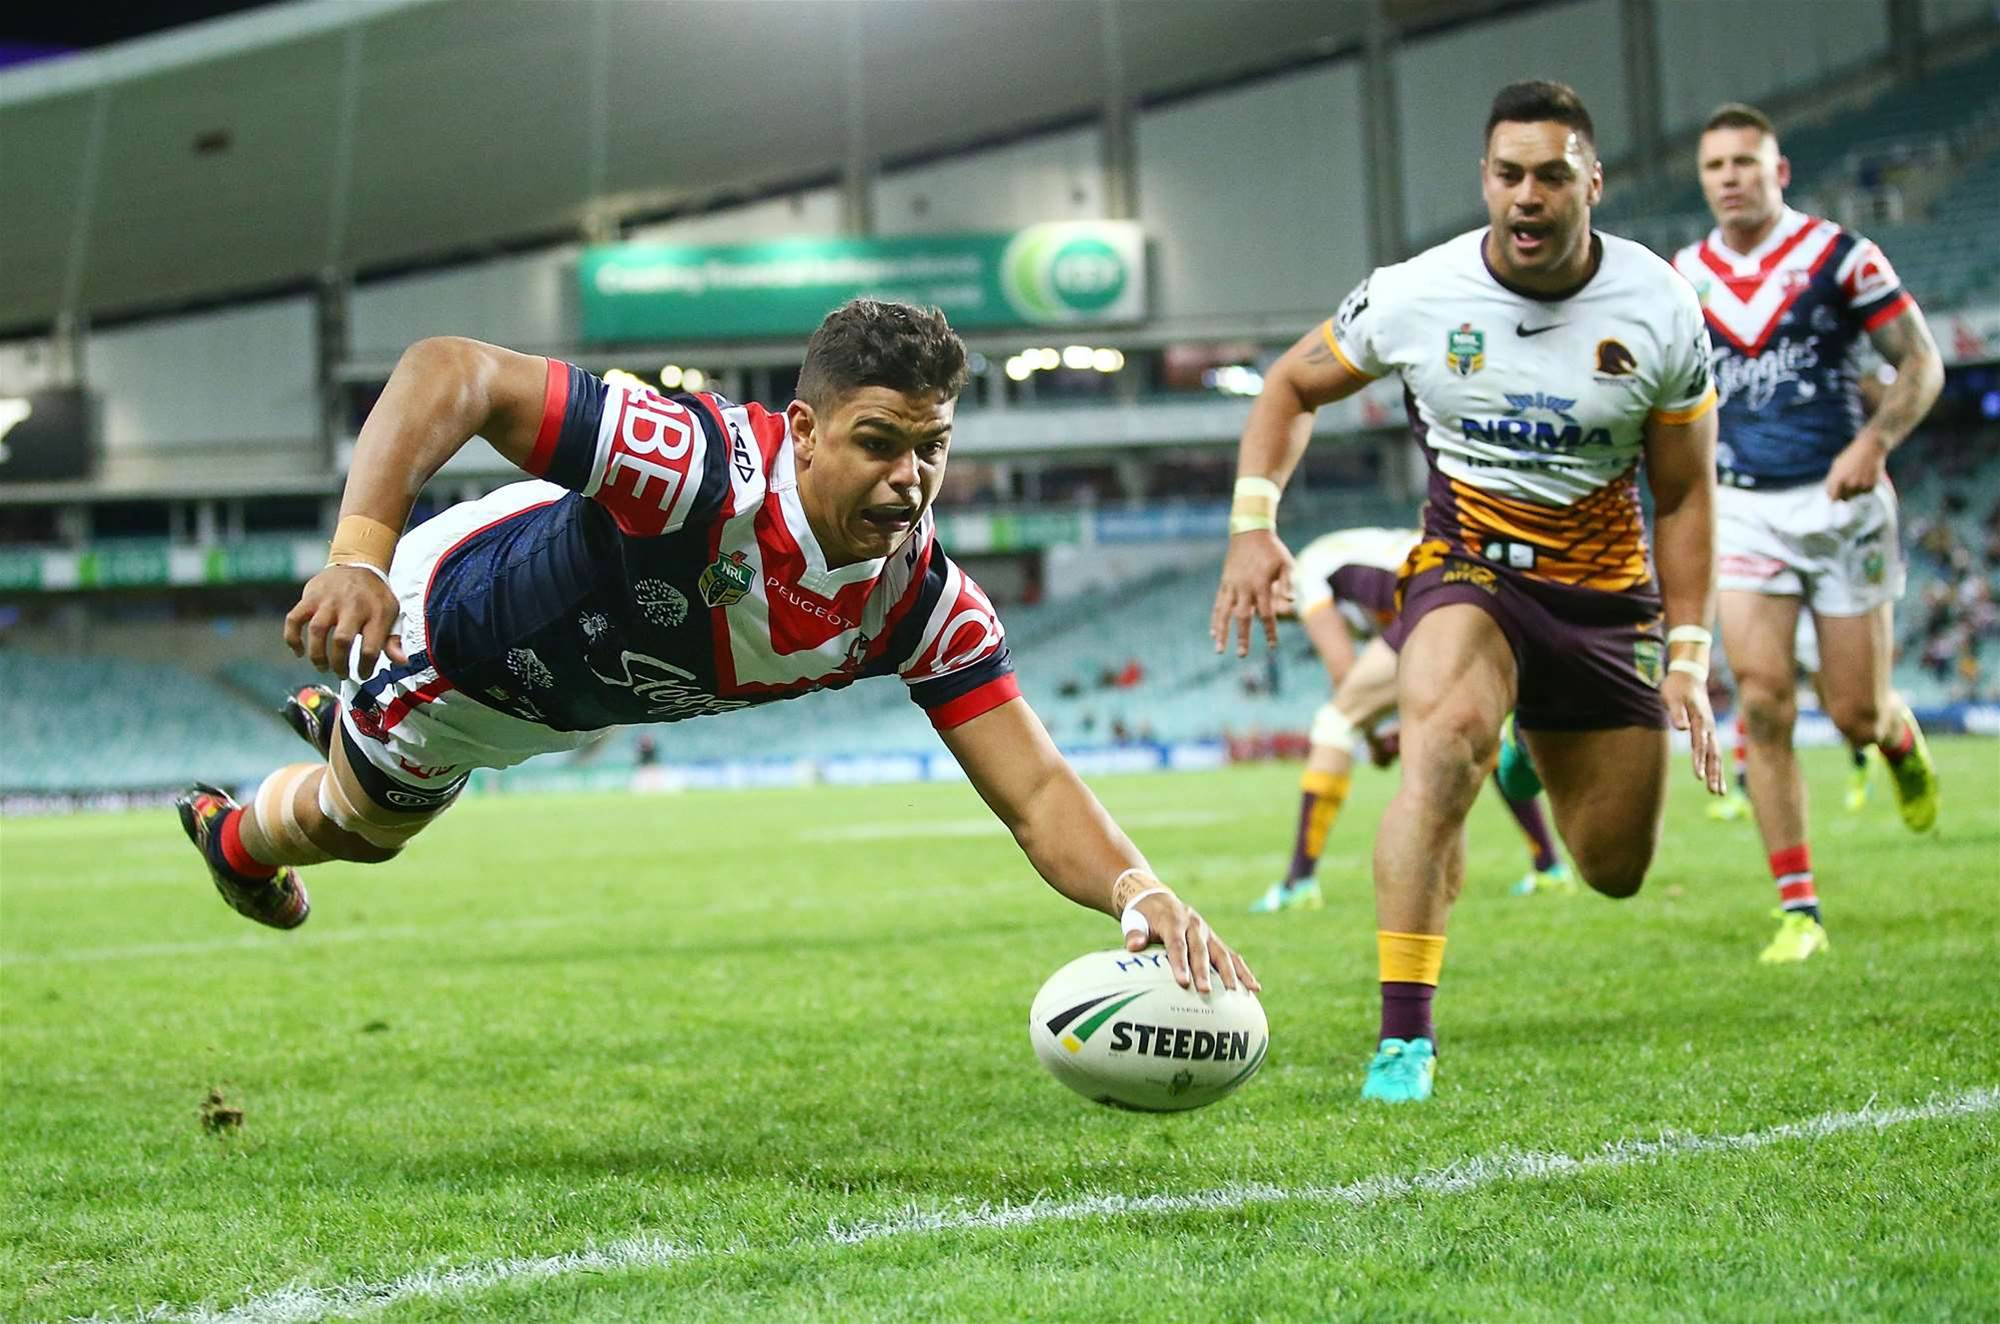 NRL action from round 21